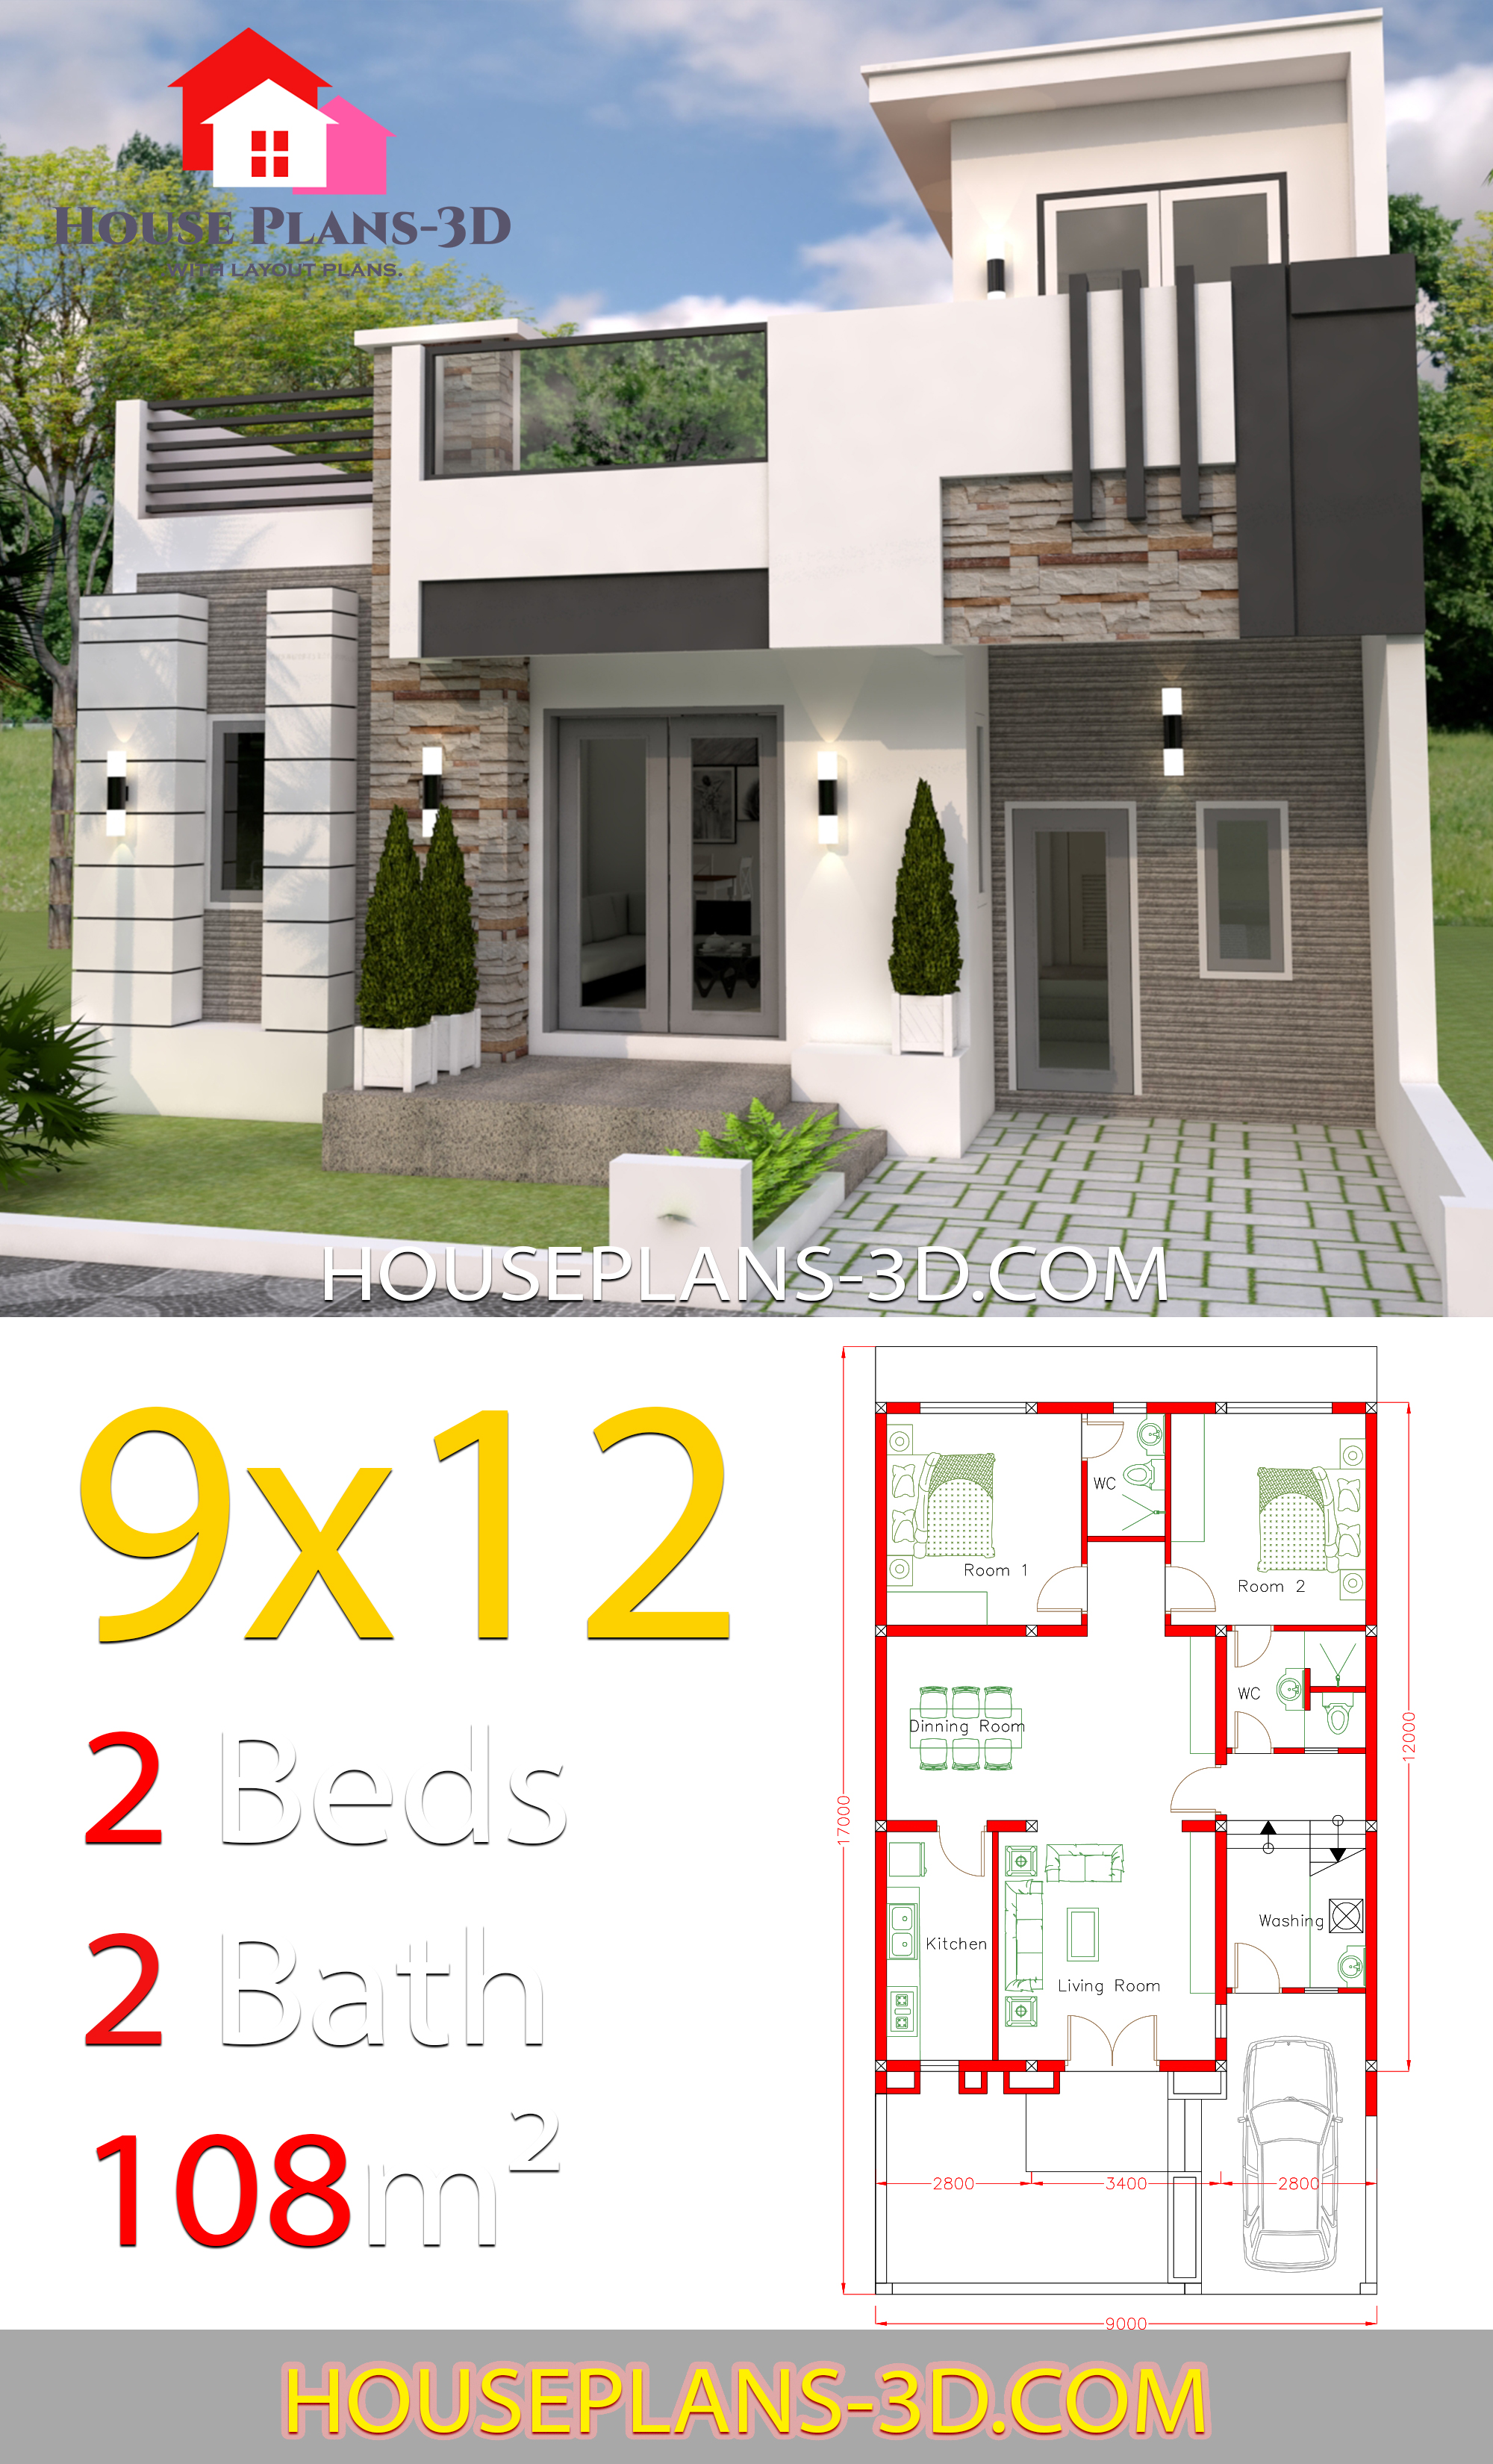 10 X 12 Bedroom Design: House Design 9x12 With 2 Bedrooms Full Plans